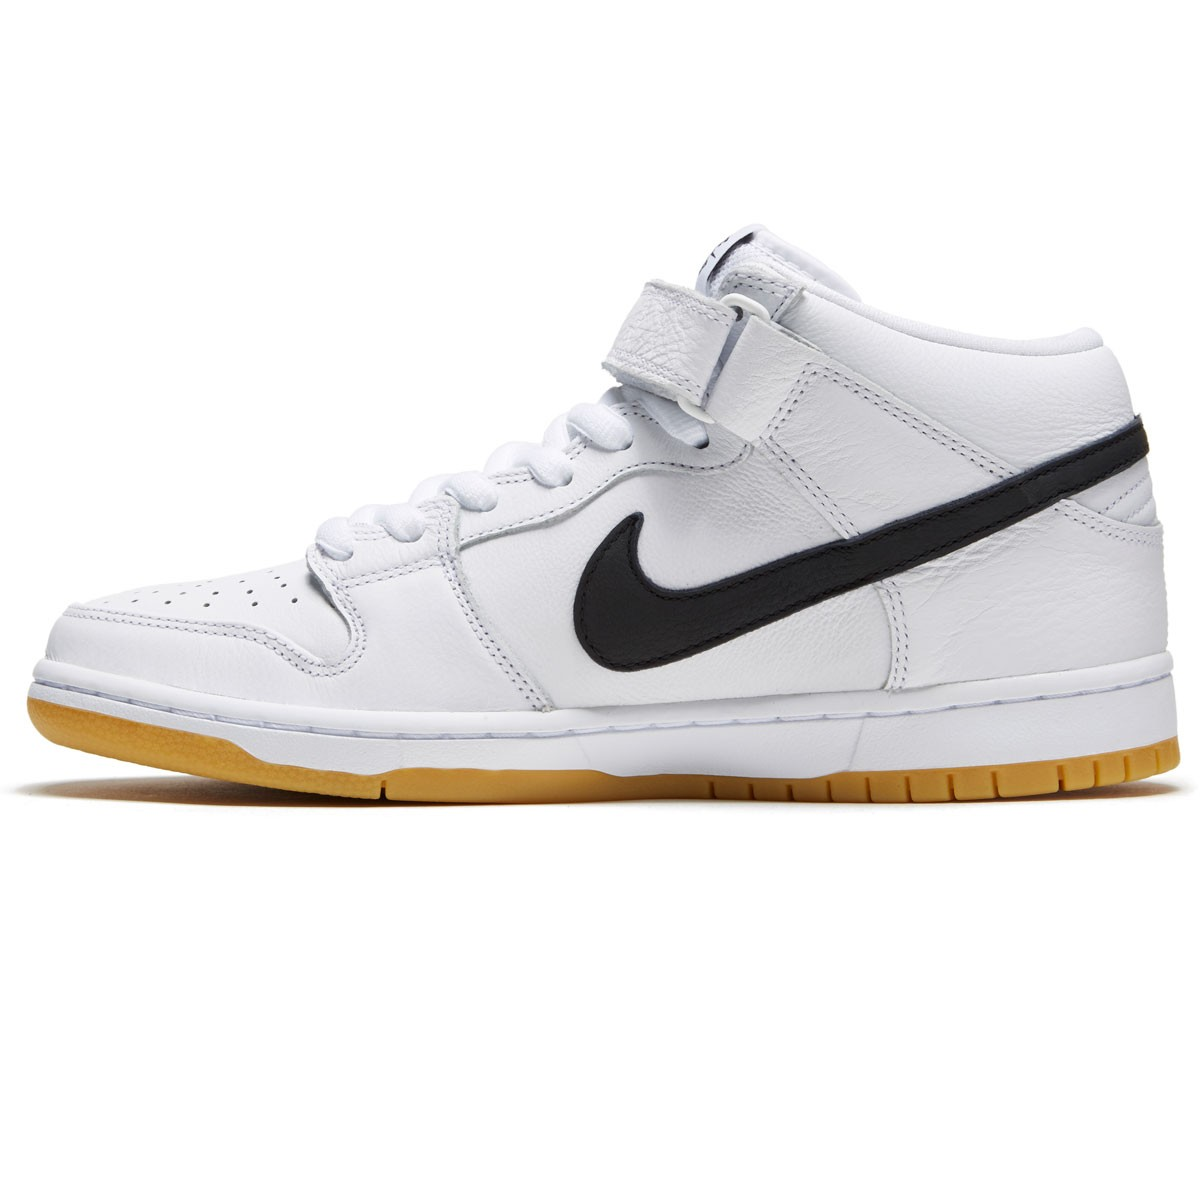 4079d747d90f Nike SB Dunk Mid Pro Shoes - White/Black/White/Gum Light Brown